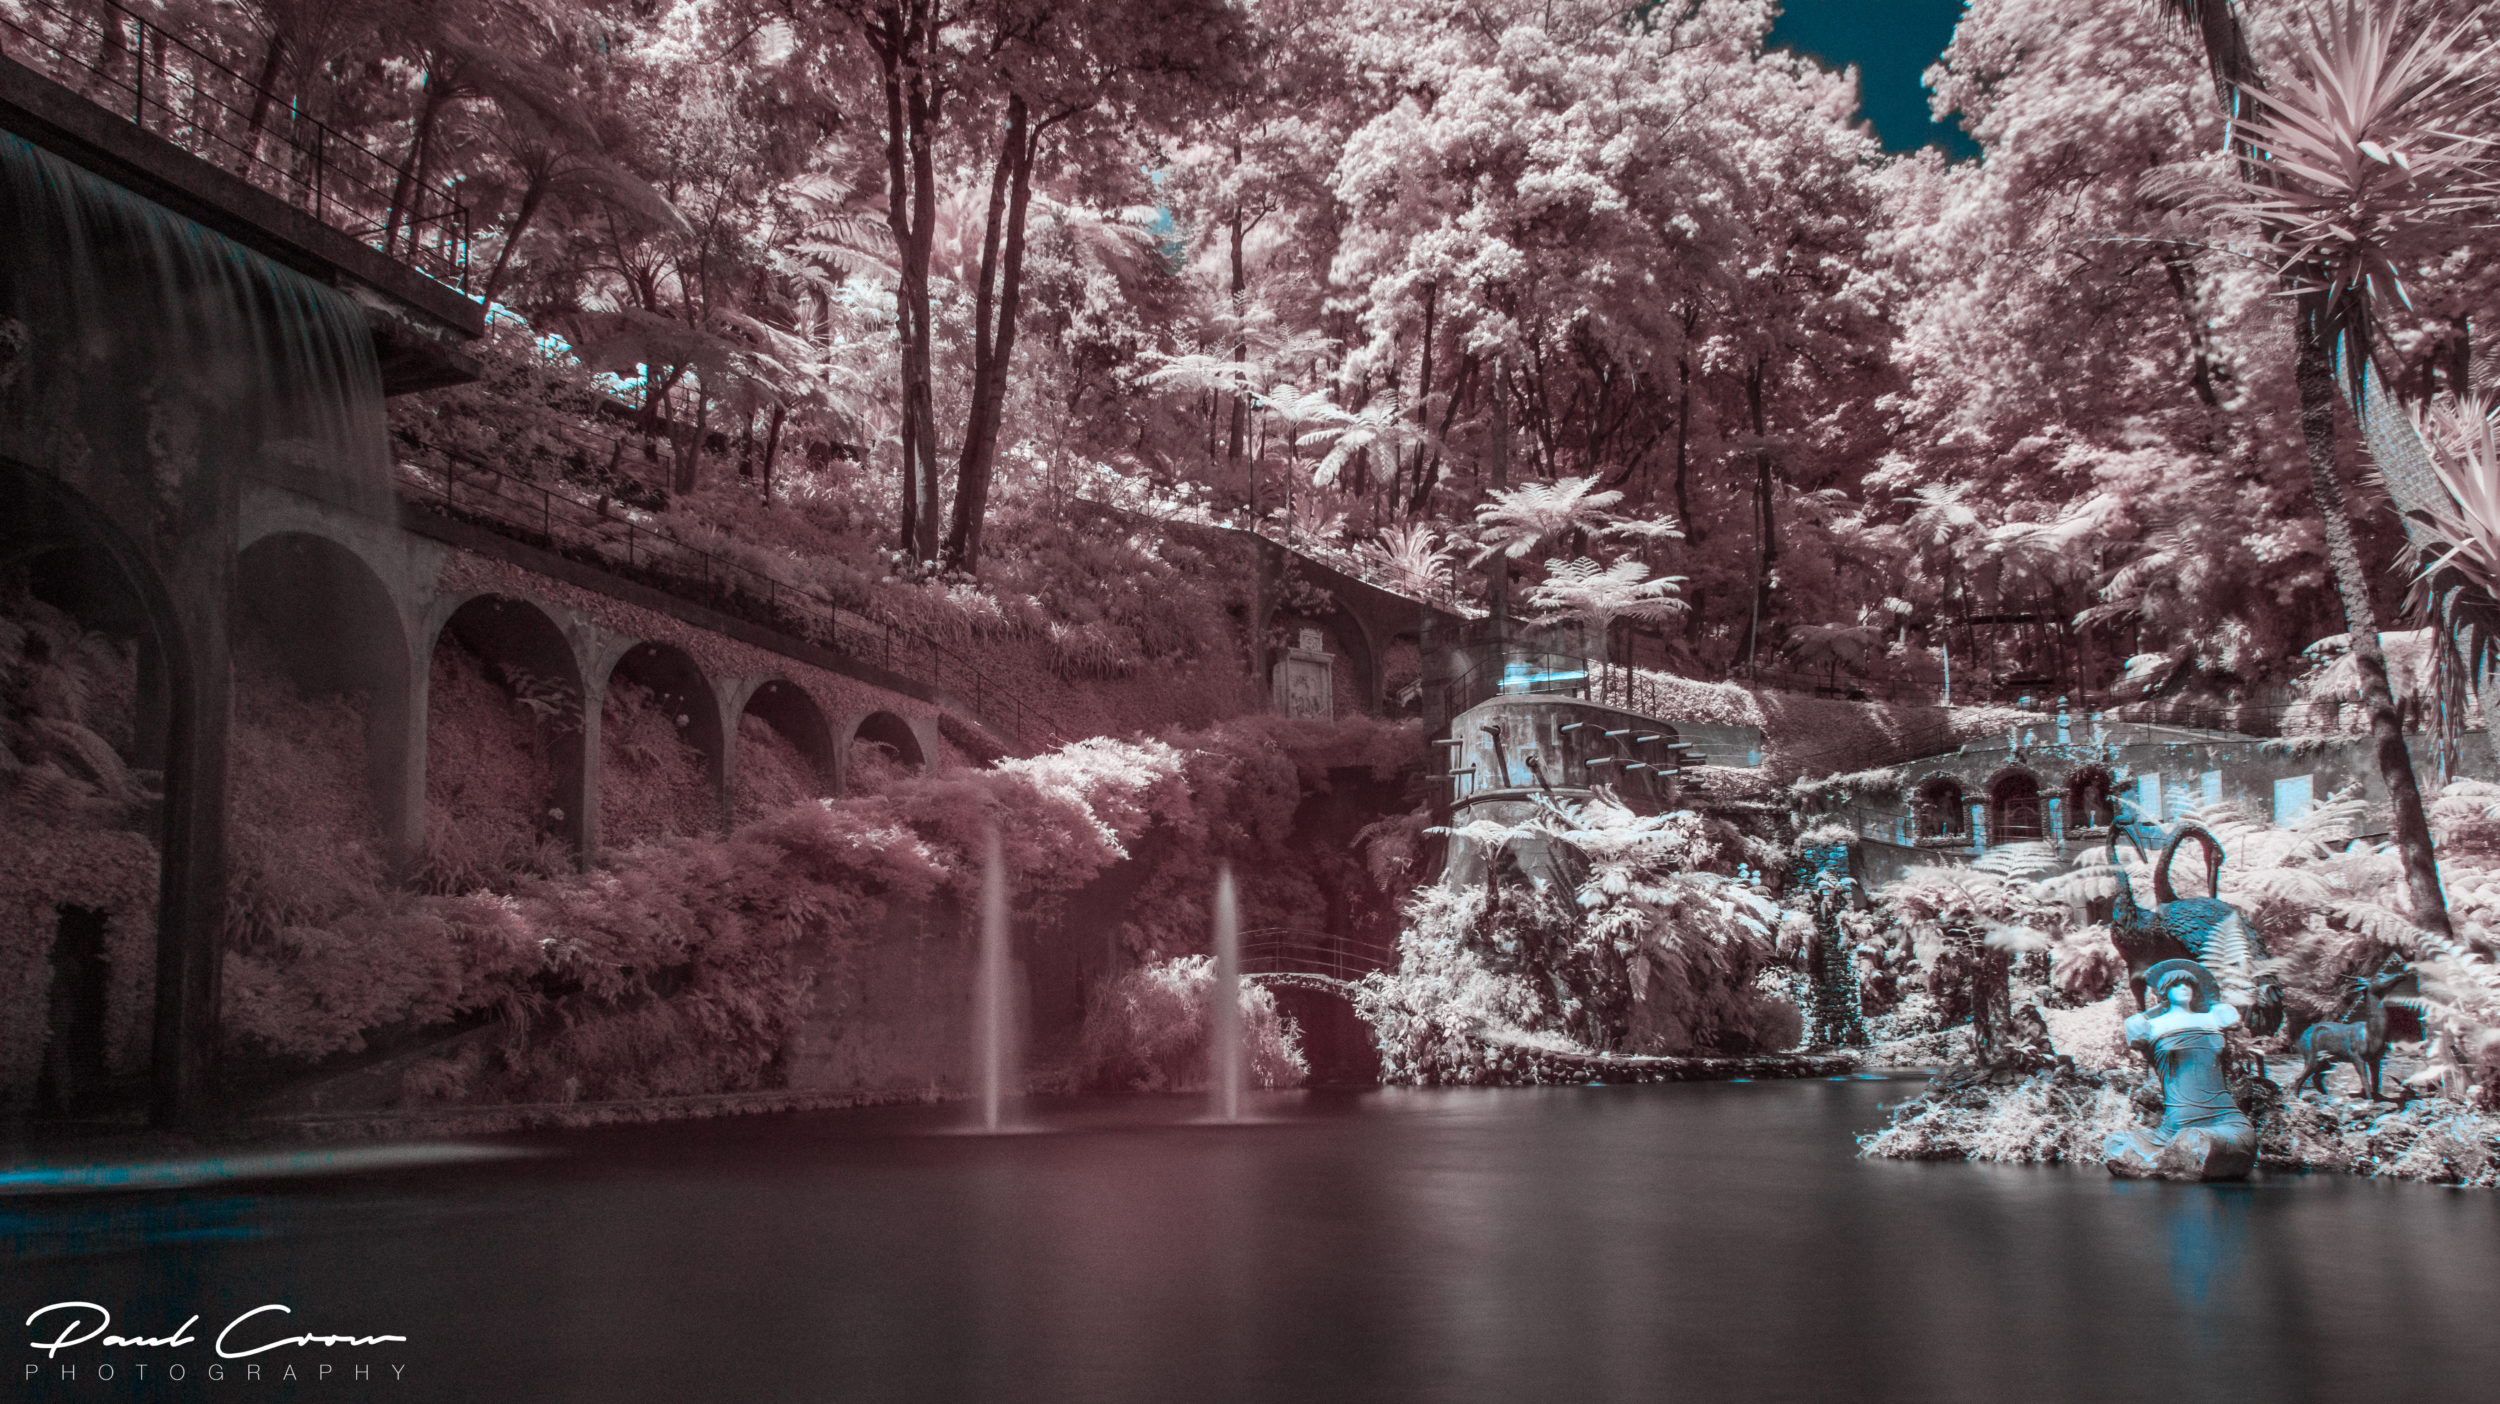 Native IR Monte Palace Tropical Garden in Funchal